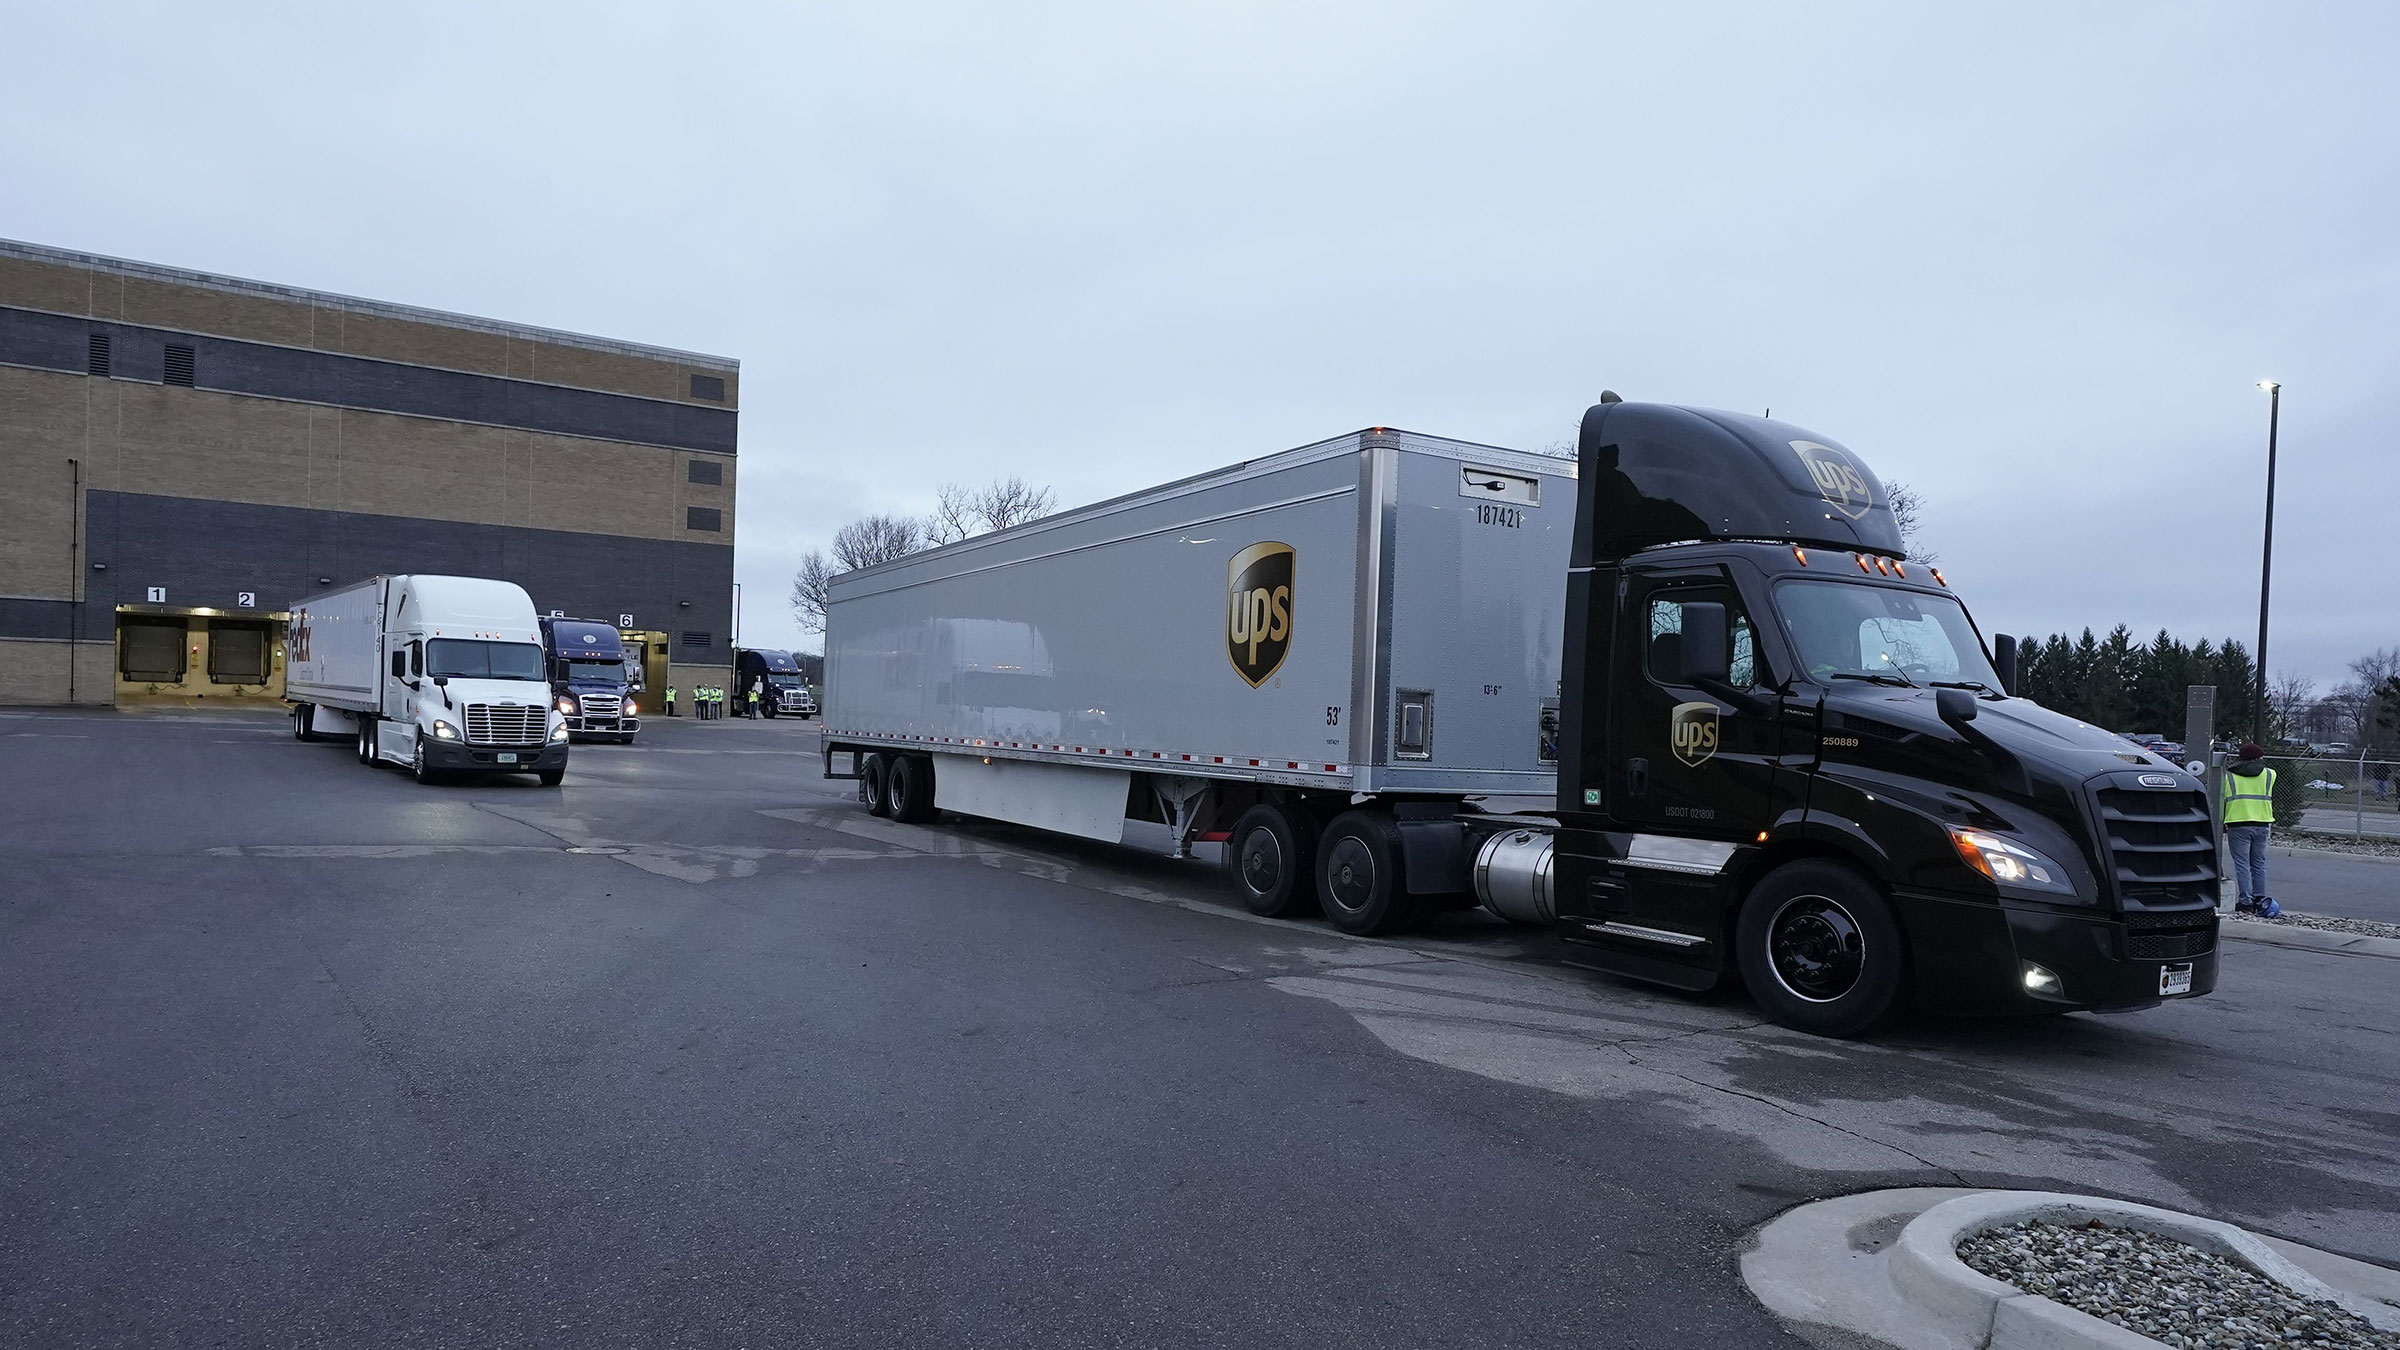 Trucks containing the Pfizer-BioNTech Covid-19 vaccine leave the Pfizer manufacturing plant in Kalamazoo, Michigan, on December 13.